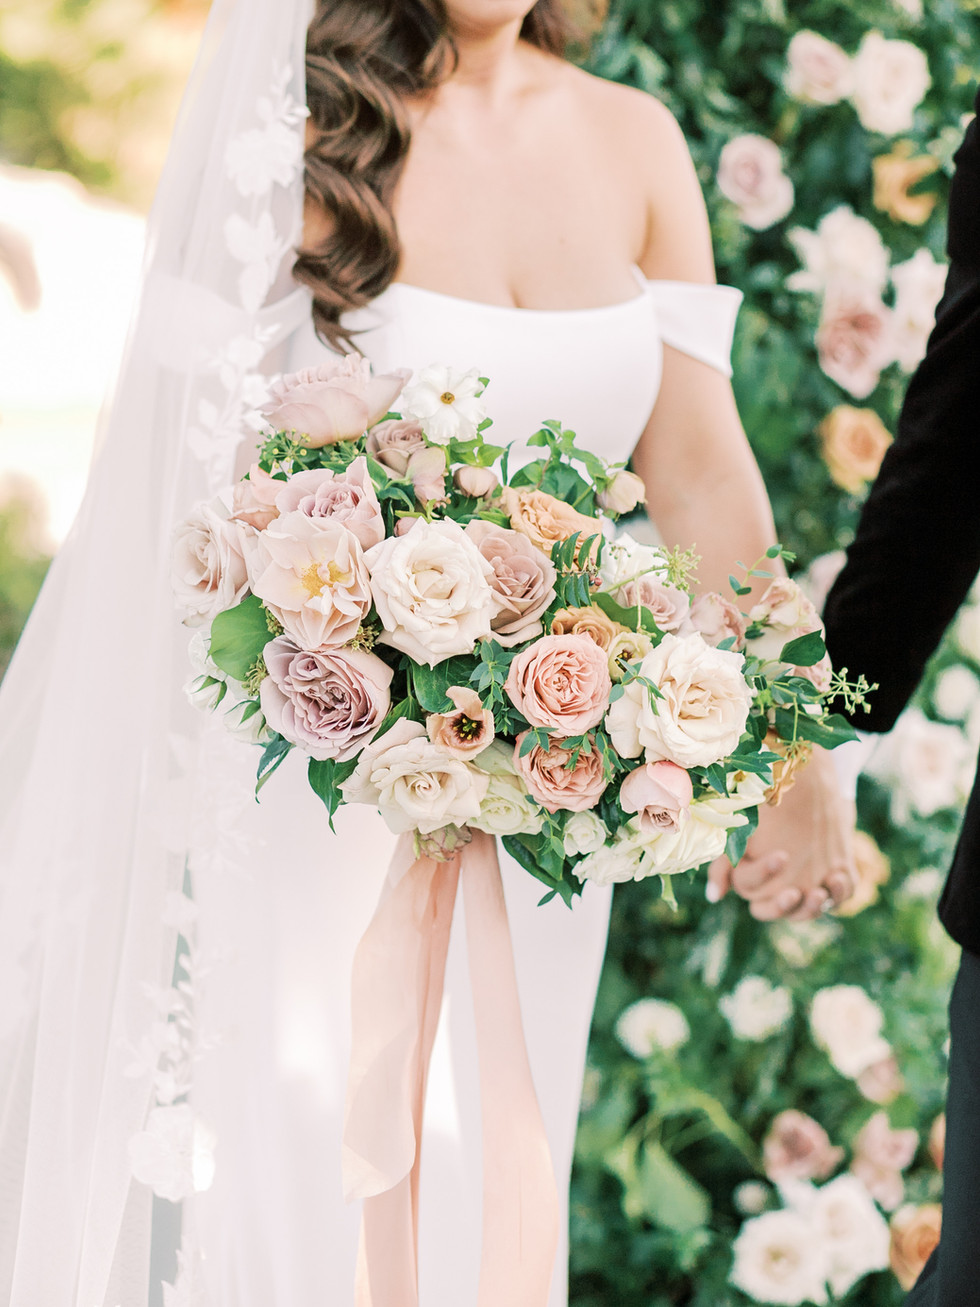 Dusty blush, rose, and toffee bridal bouquet. Photo: Lianna Marie